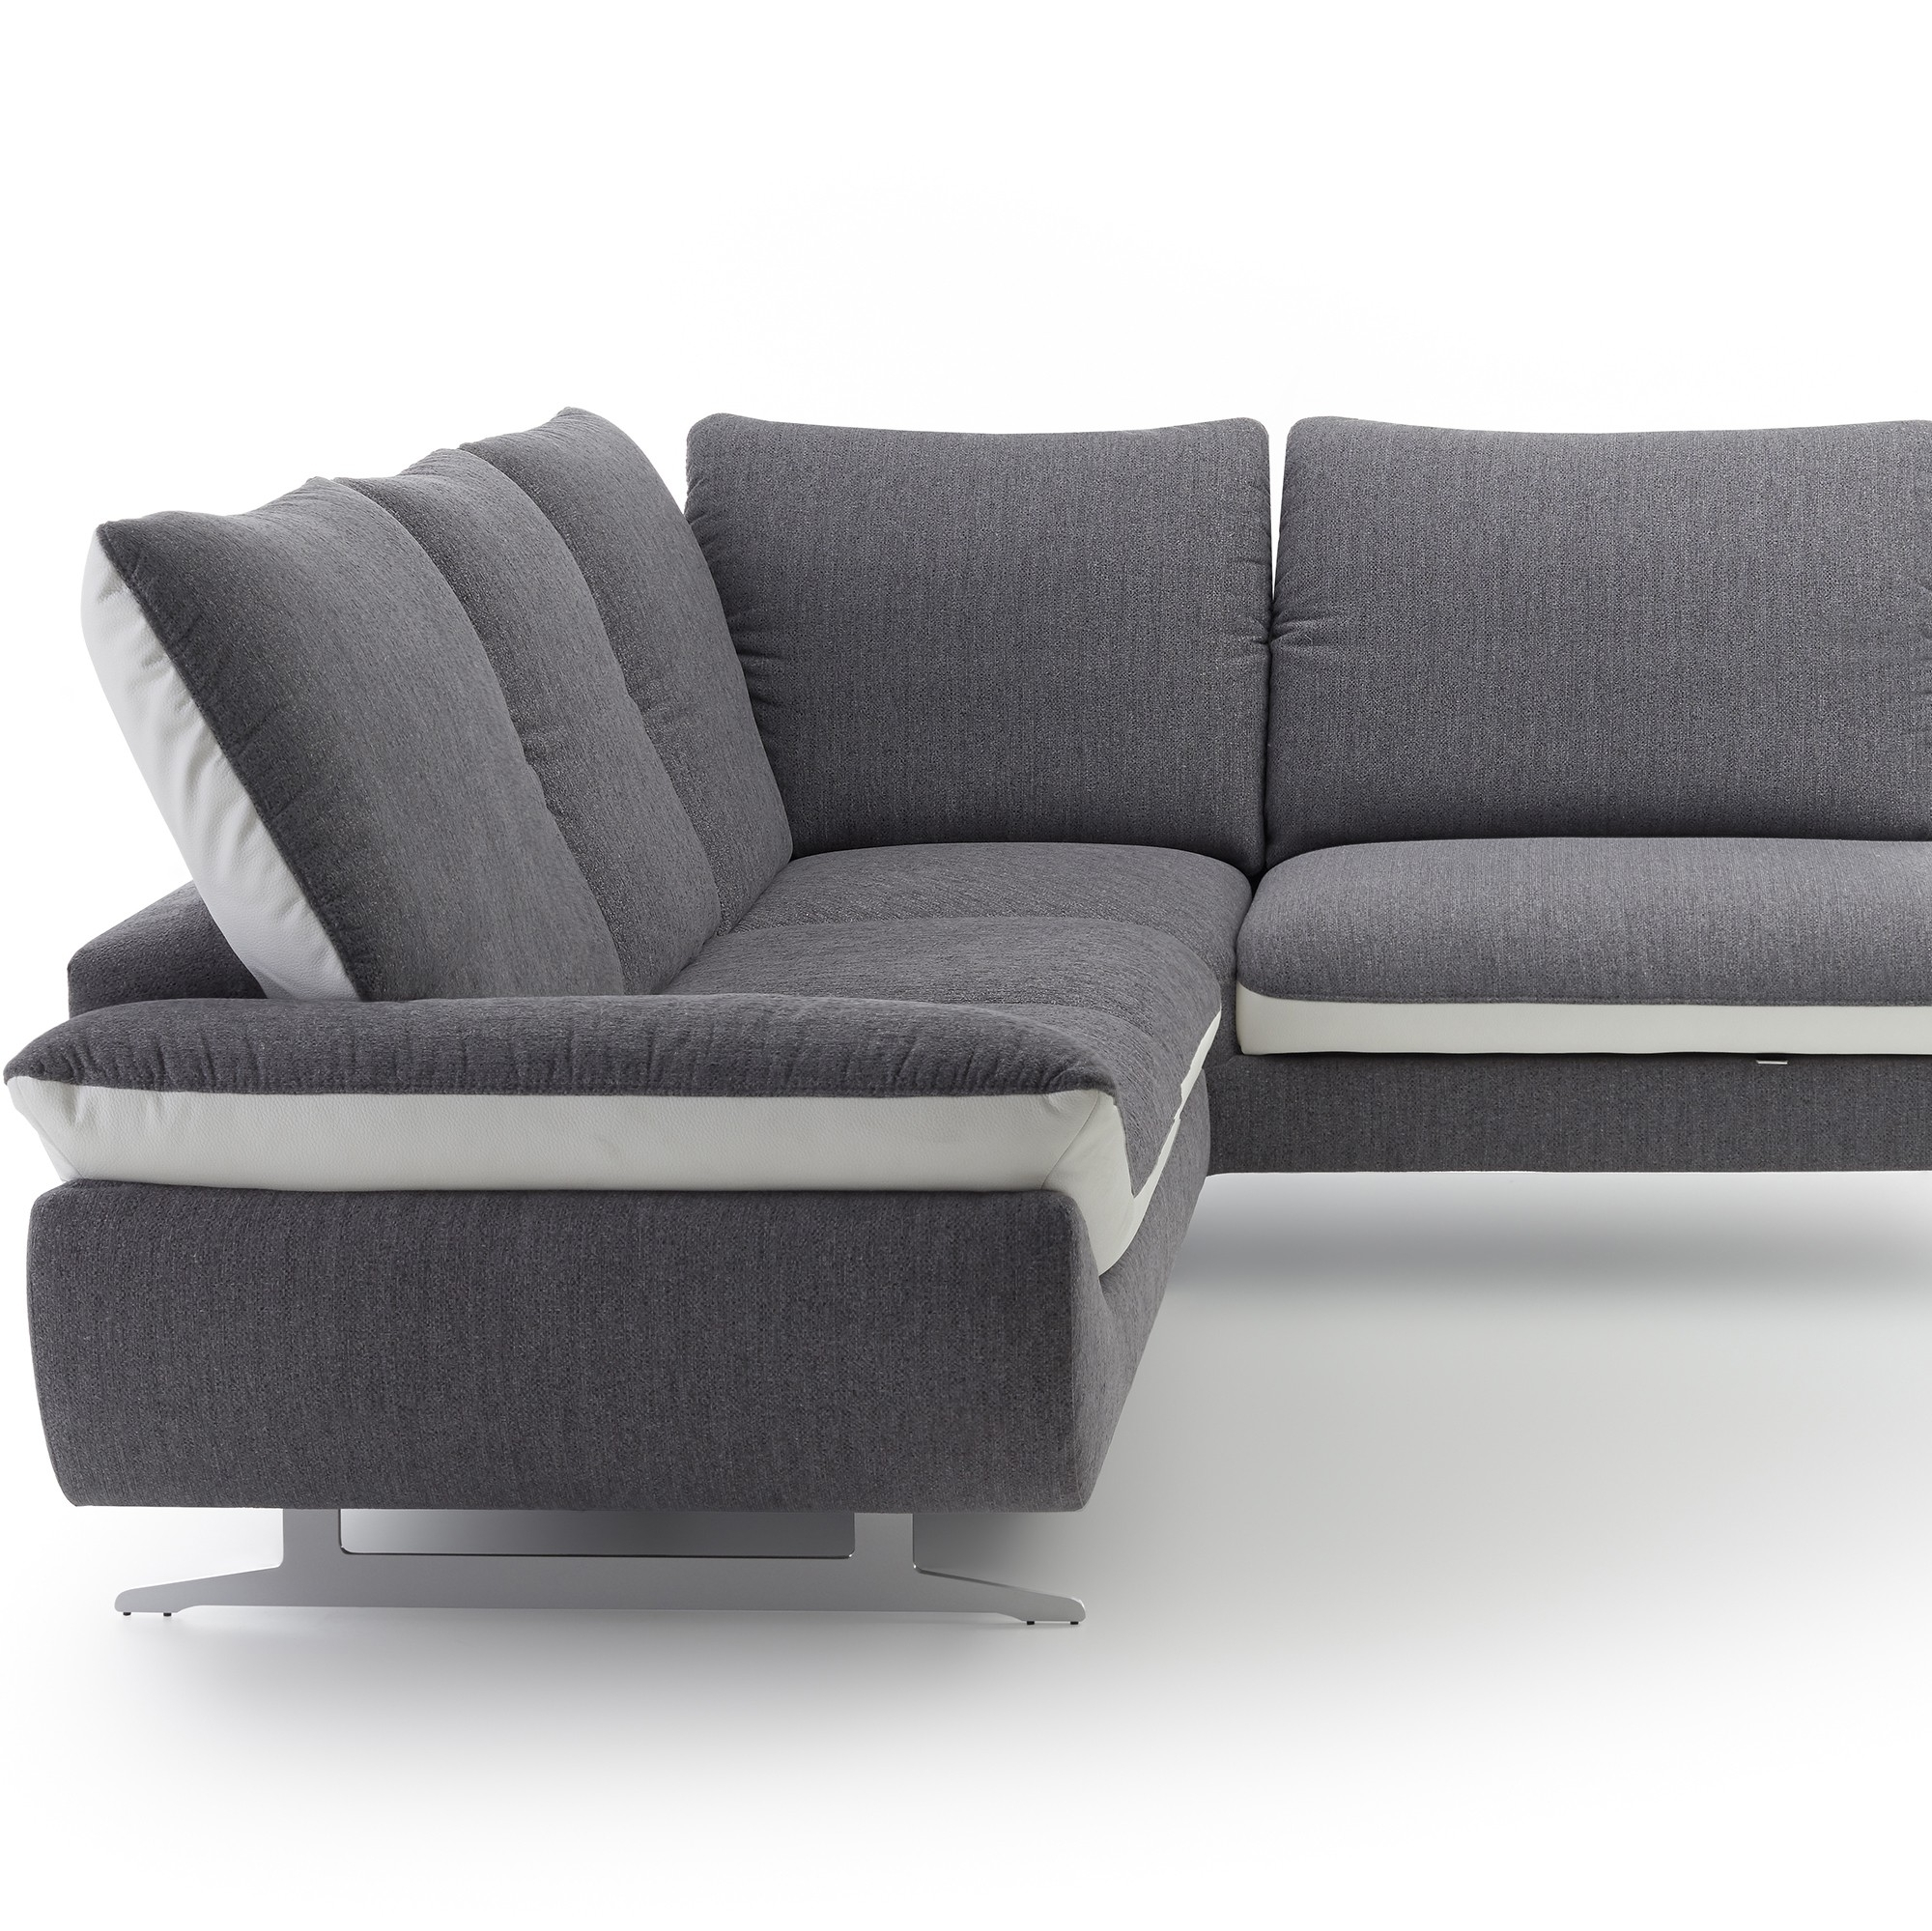 Most Recently Released Trinidad And Tobago Sectional Sofas Intended For Il Decor Boston: Sectional Sofas (View 8 of 20)